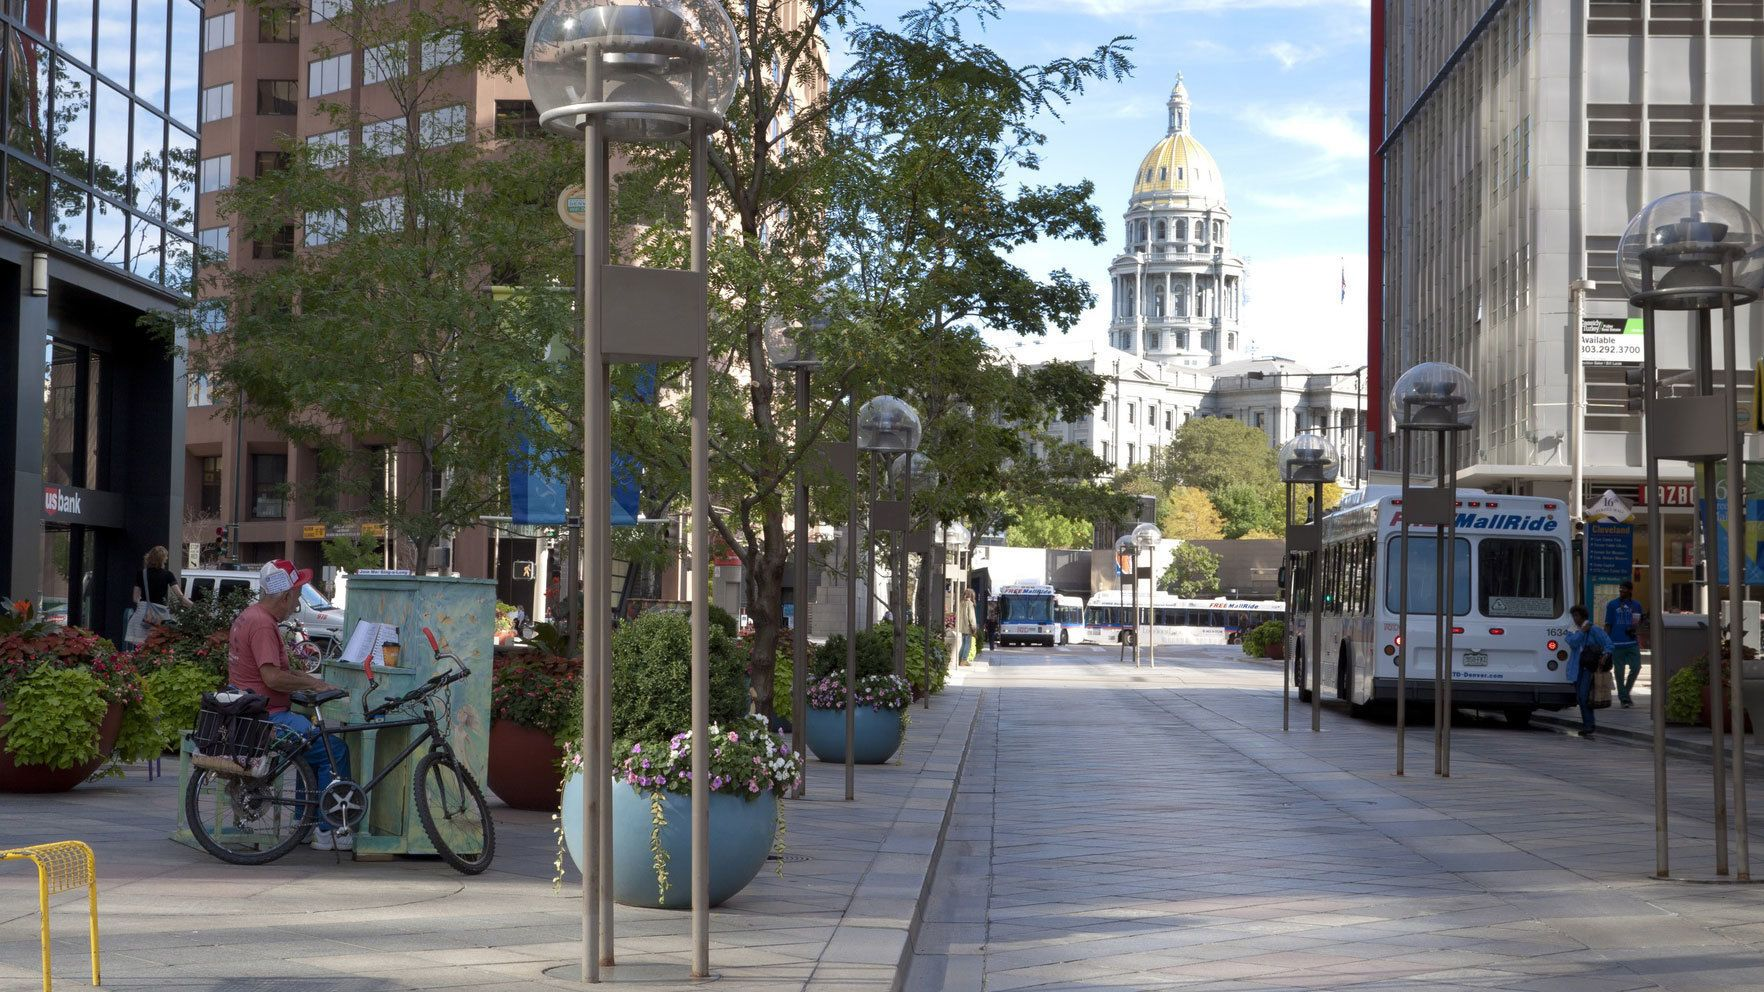 Street through the city center with the Capitol Building in the background in Denver